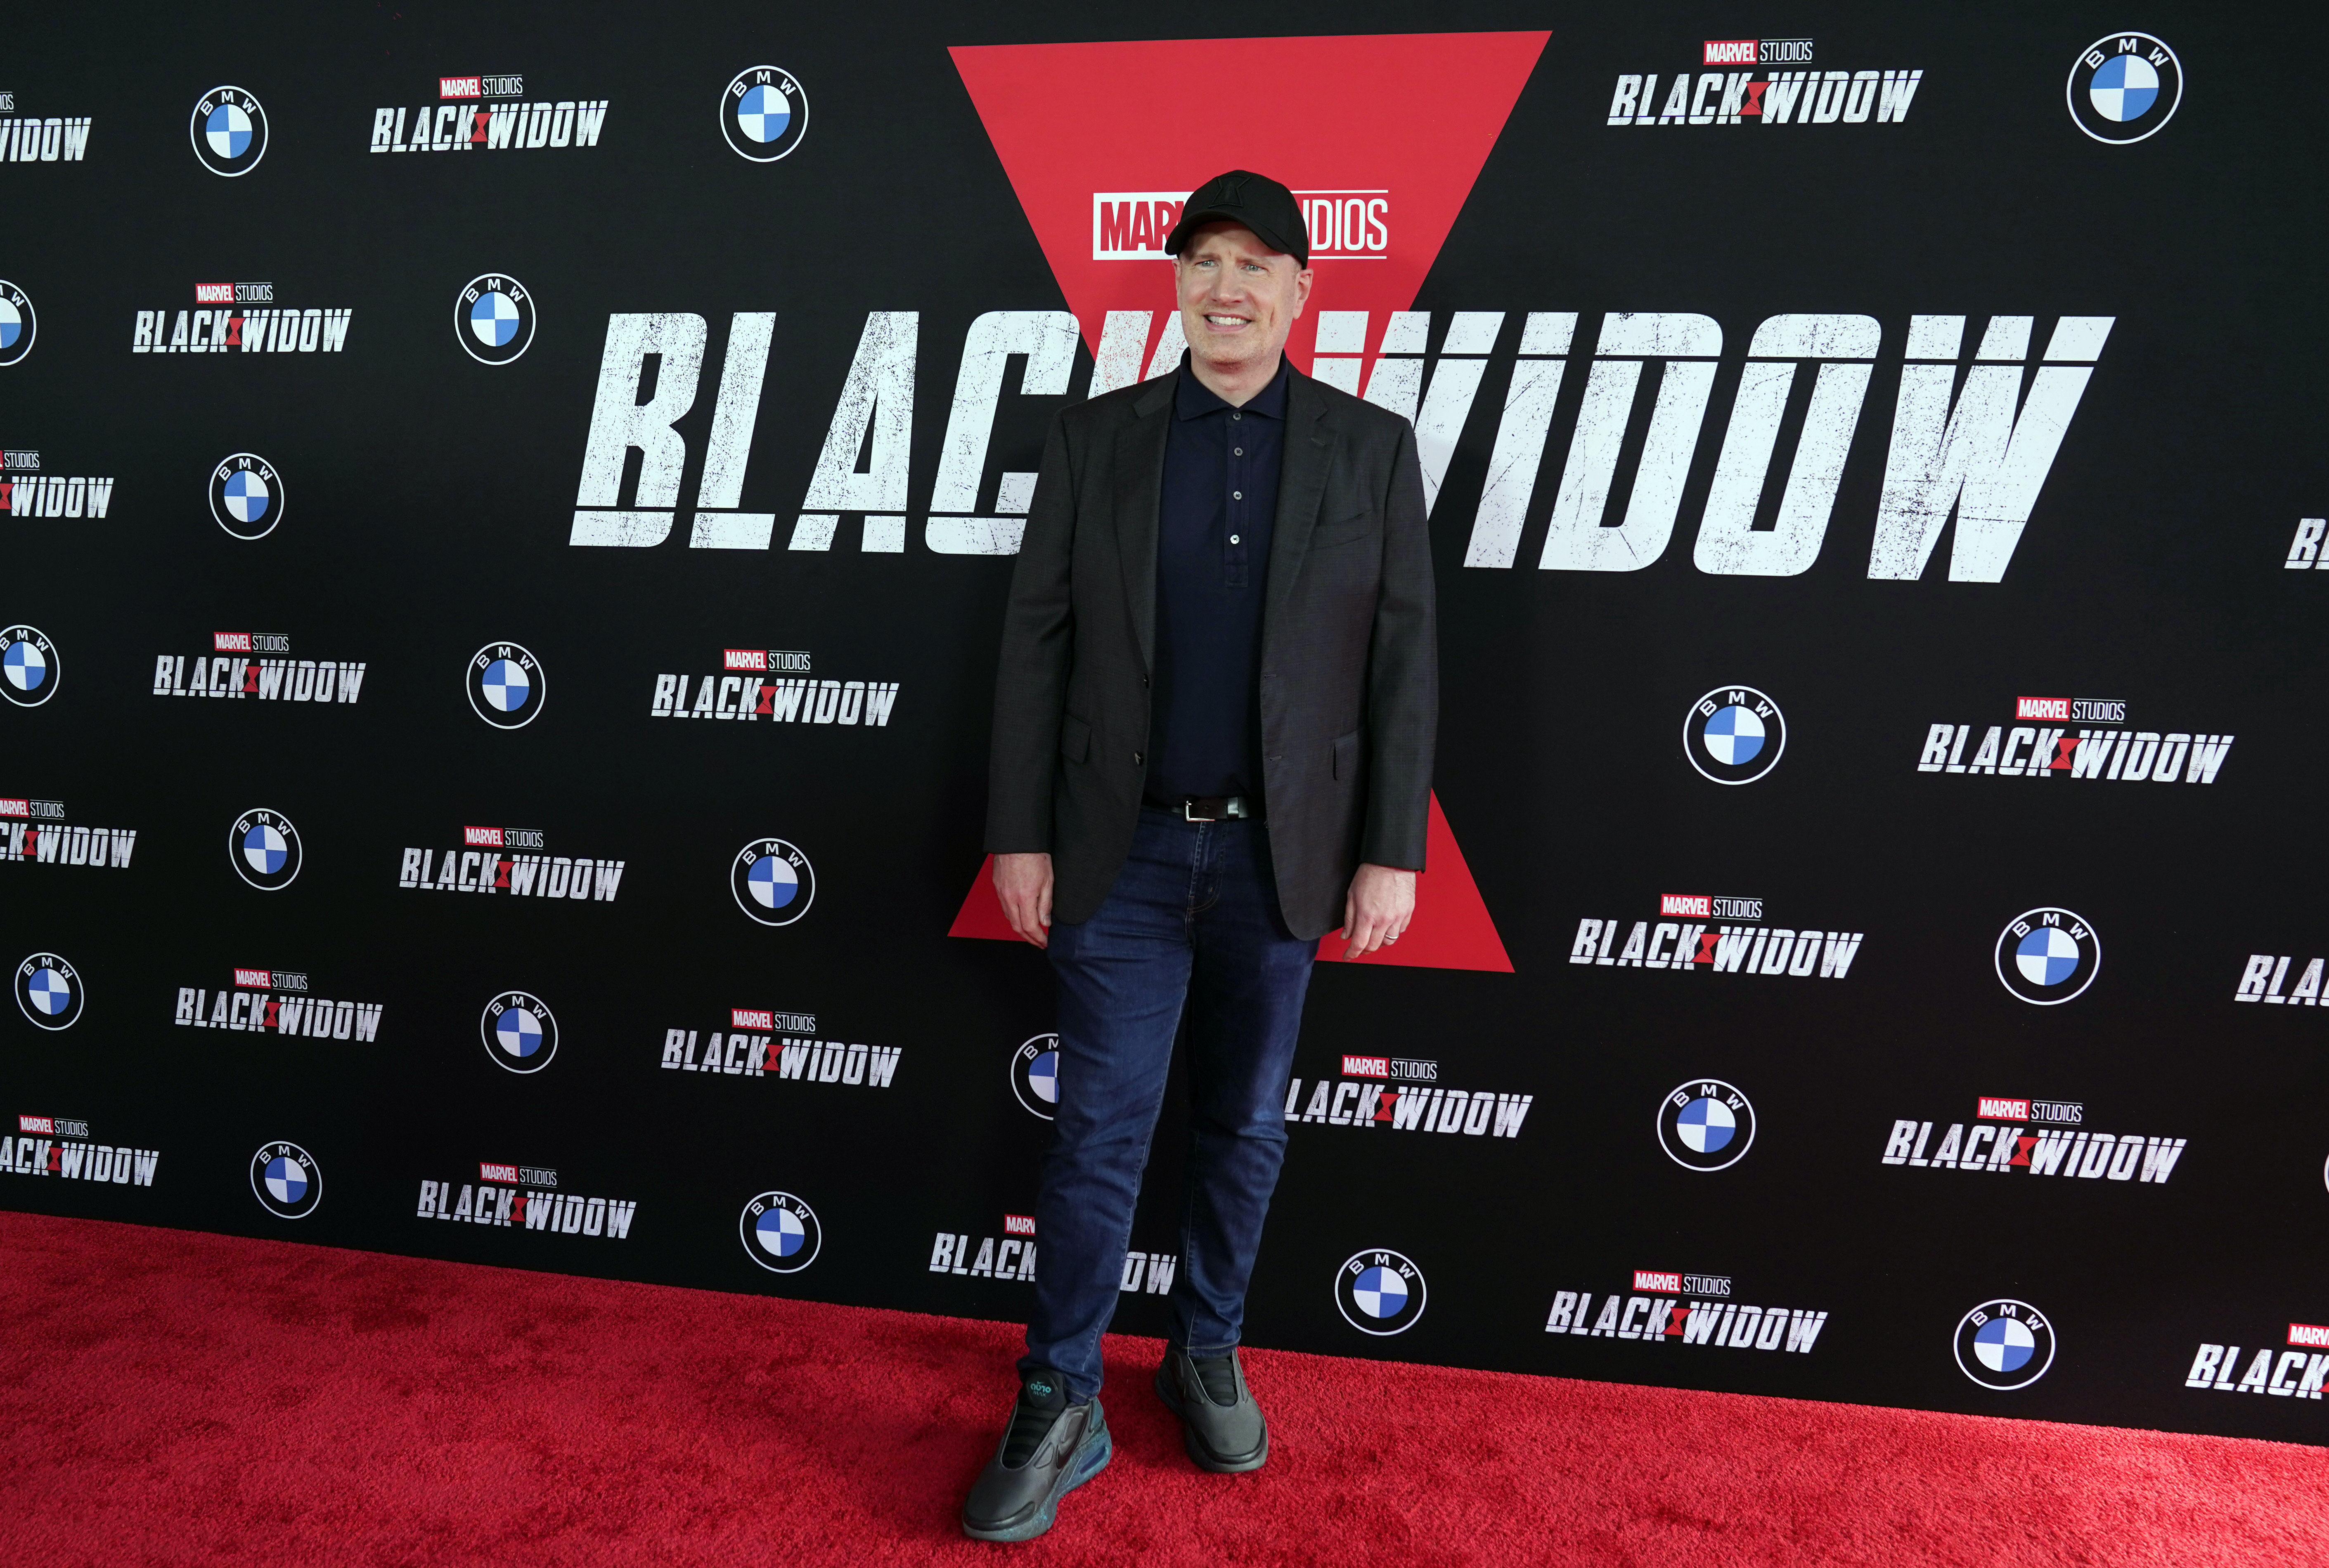 """Kevin Feige, chief creative officer and president of Marvel Studios, poses before a fan screening of the new Marvel film """"Black Widow"""" at the El Capitan Theatre, Tuesday, June 29, 2021, in Los Angeles. (AP Photo/Chris Pizzello)"""